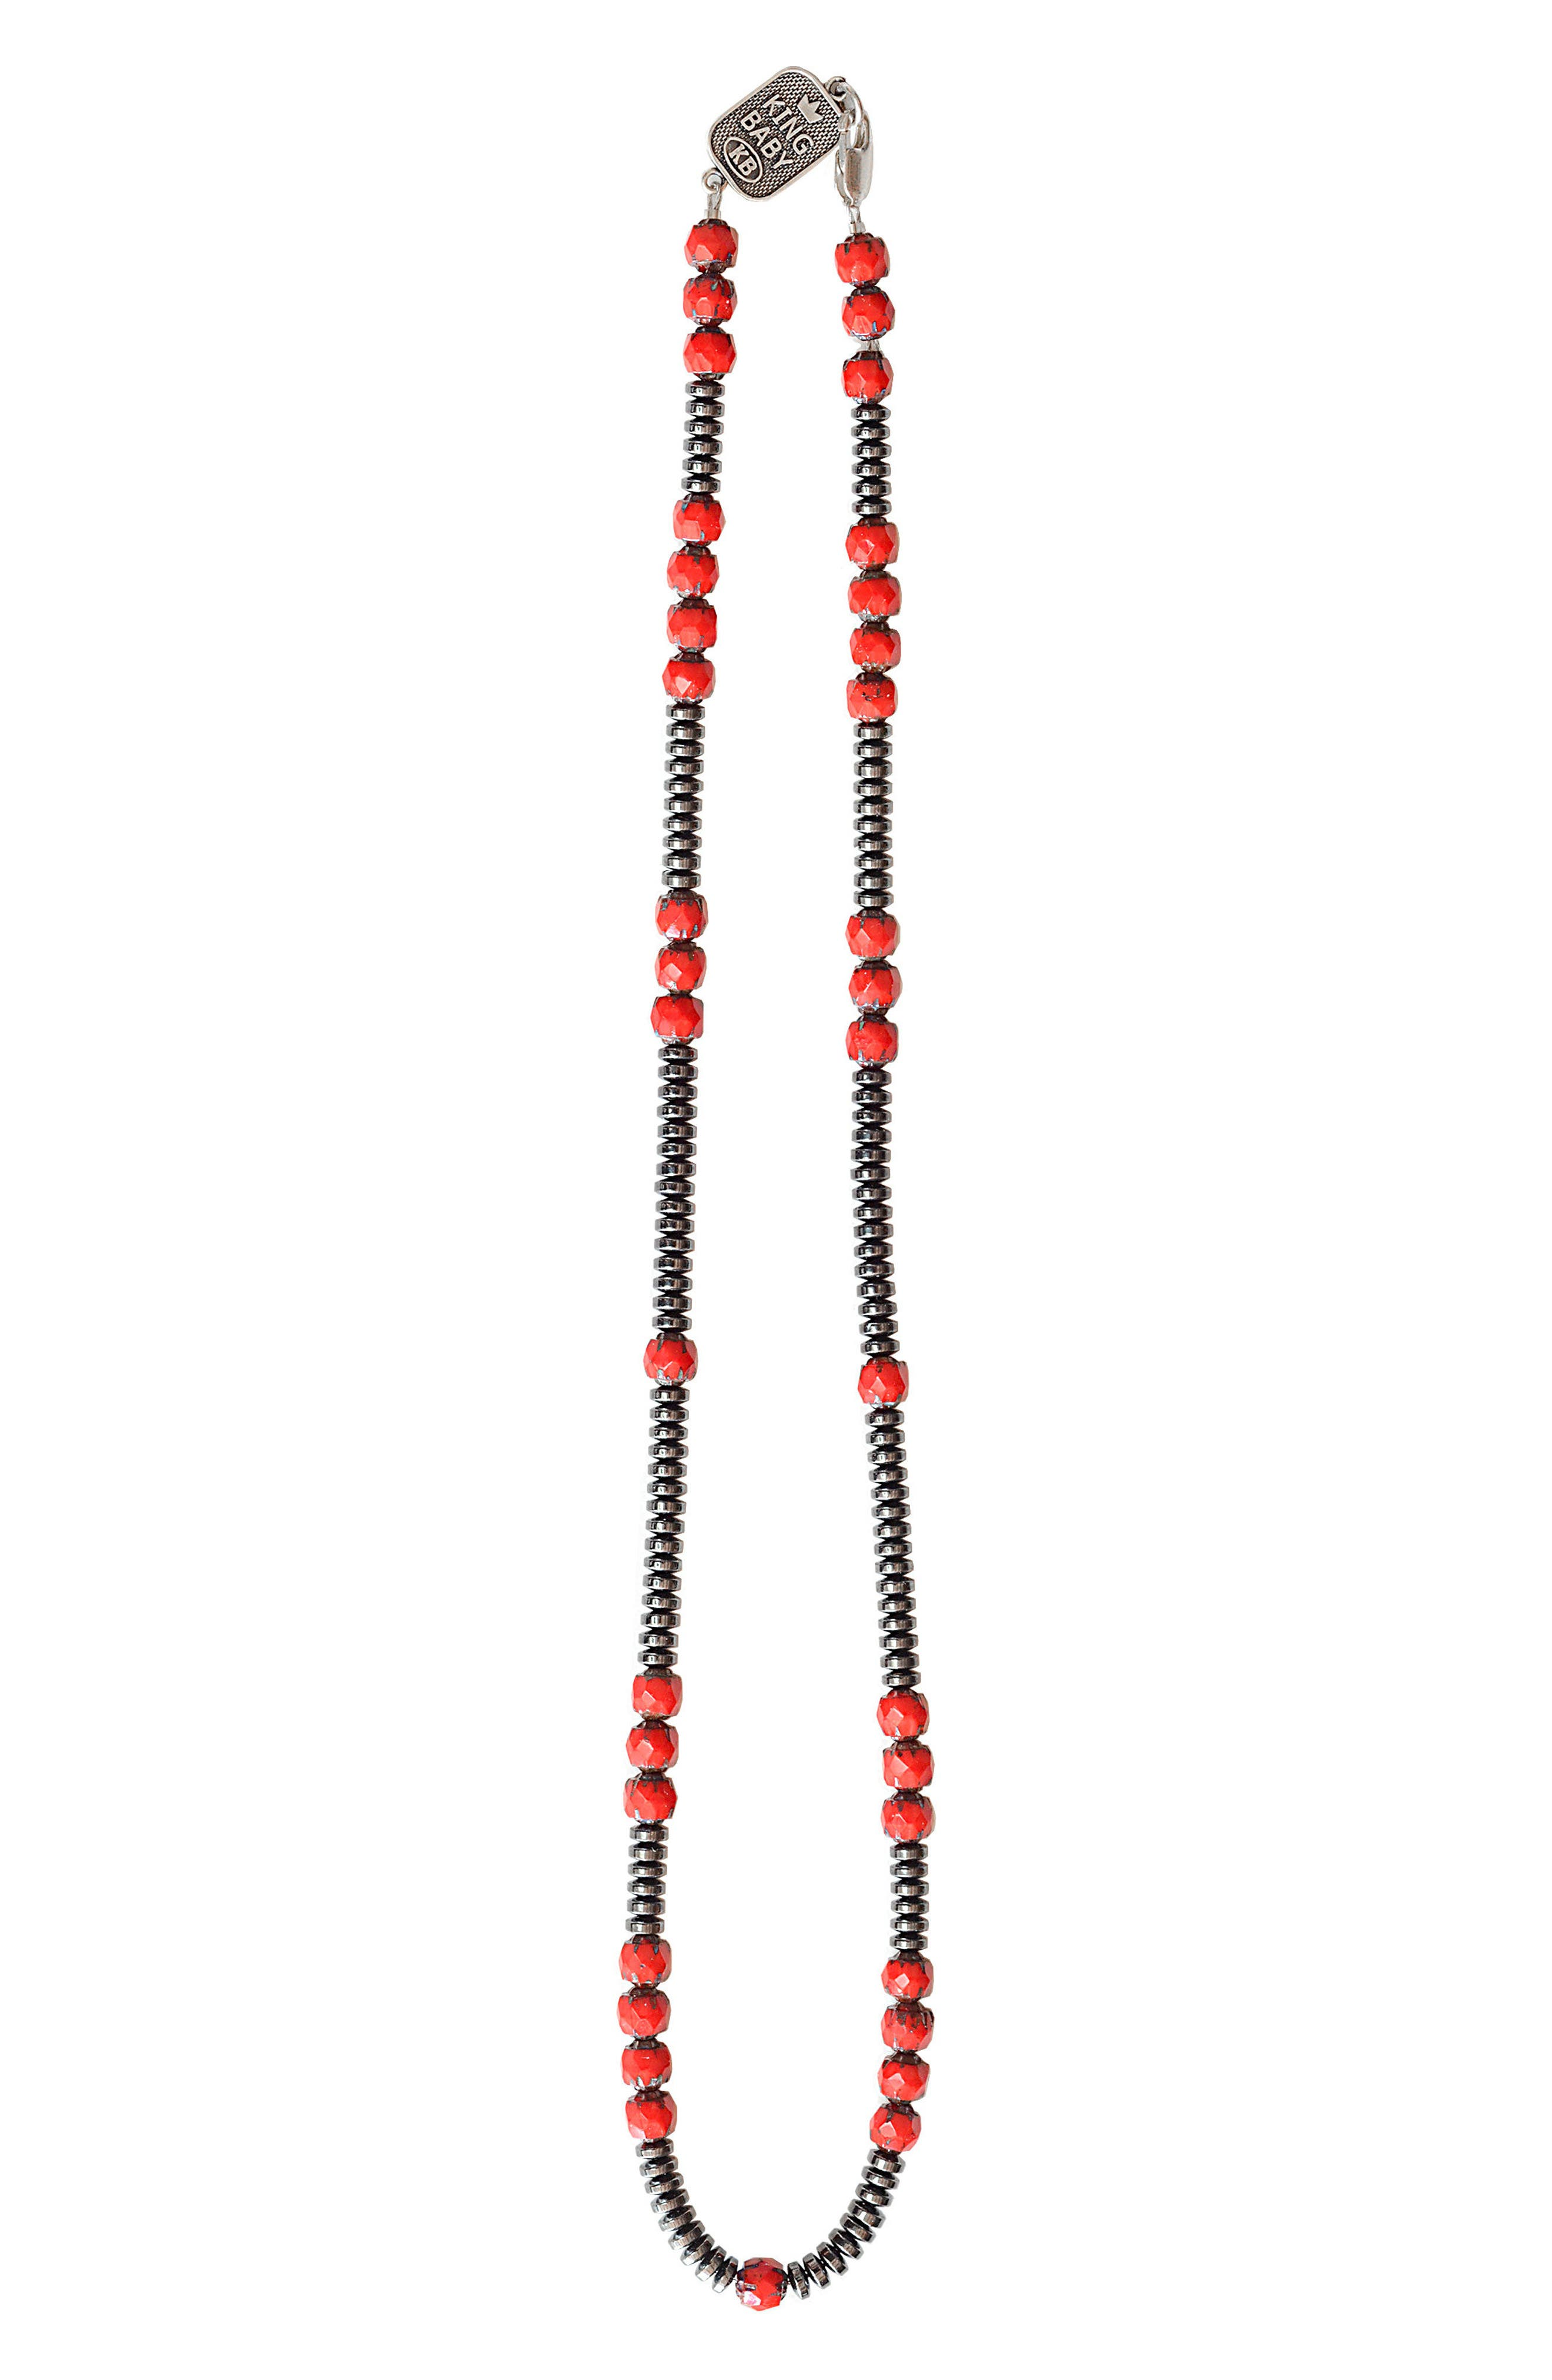 American Voices Hematite Glass Bead Necklace,                             Main thumbnail 1, color,                             RED